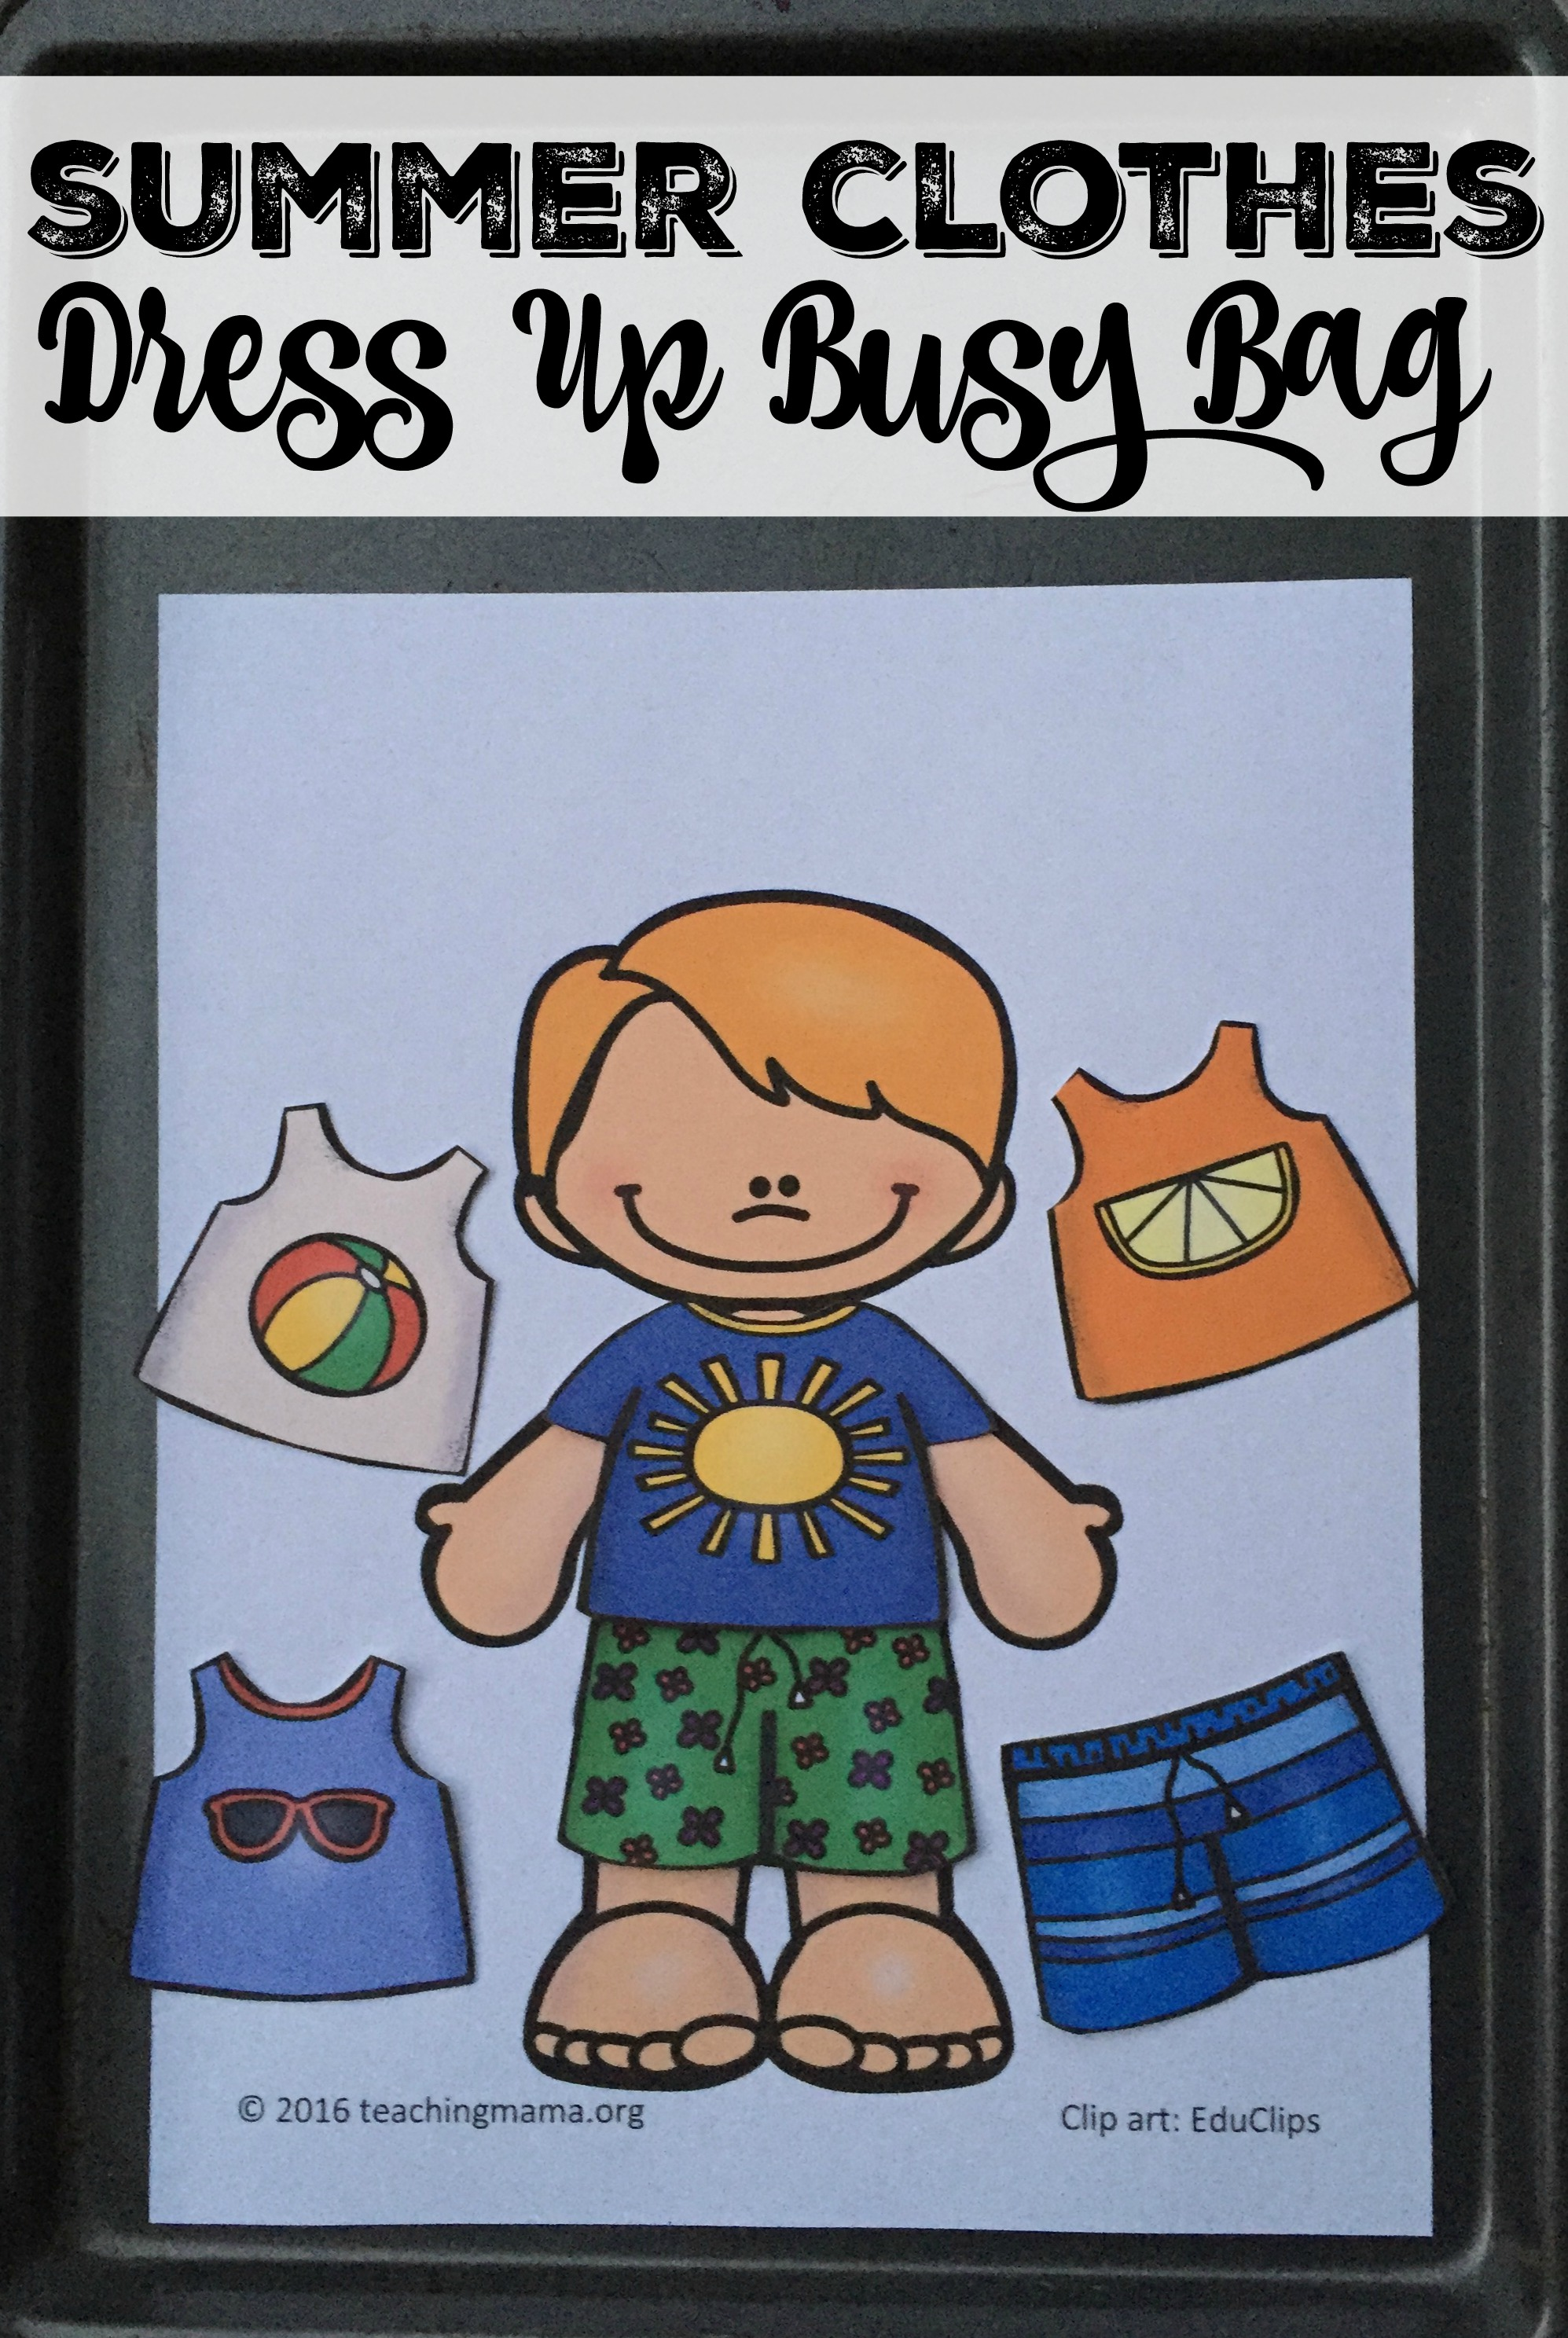 Summer Clothes Dress Up Busy Bag